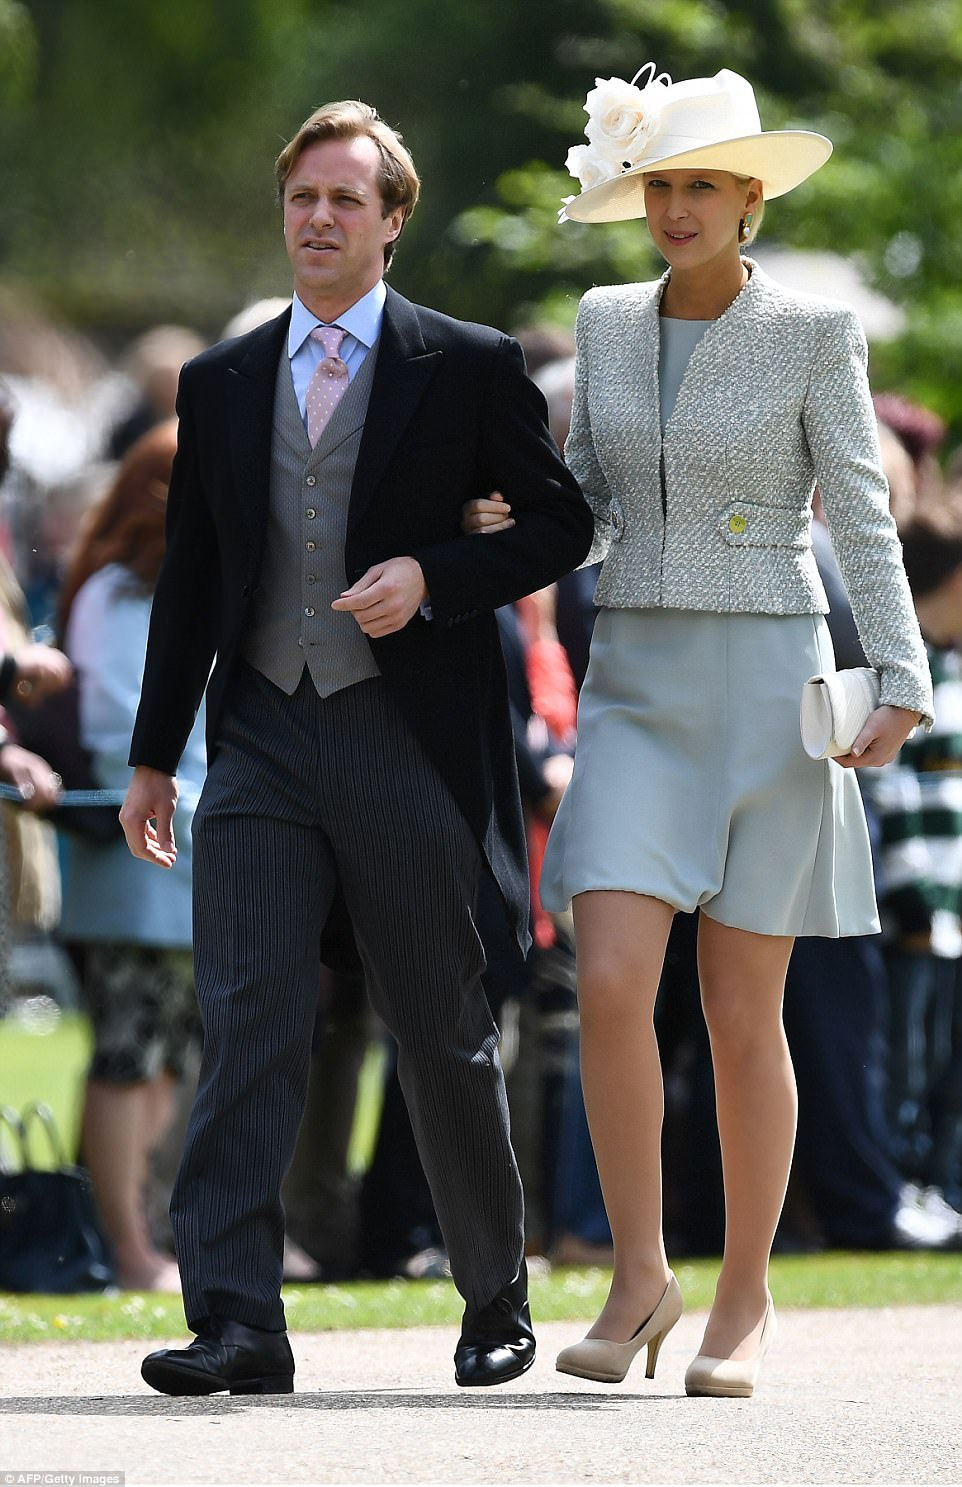 Lady Gabriella Windsor is the only daughter of Prince Michael of Kent and his wife - the Queen's cousin. She flashed her legs in a chic blue dress teamed with a smart blazer as she arrived on the arm of a male companion